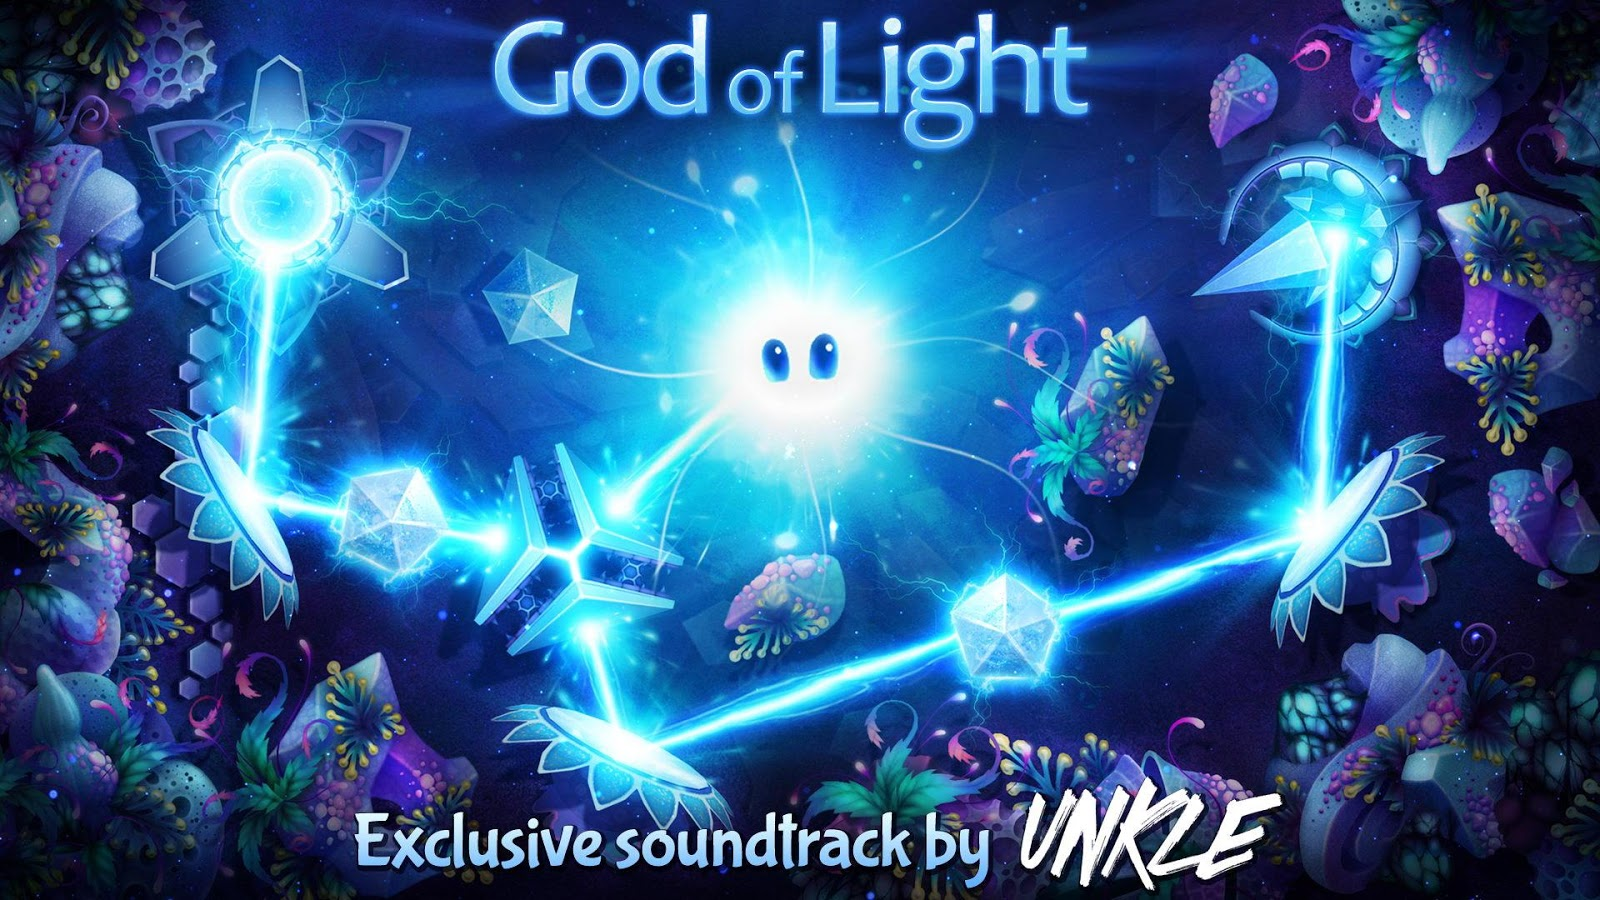 God Images God of Light HD screenshot